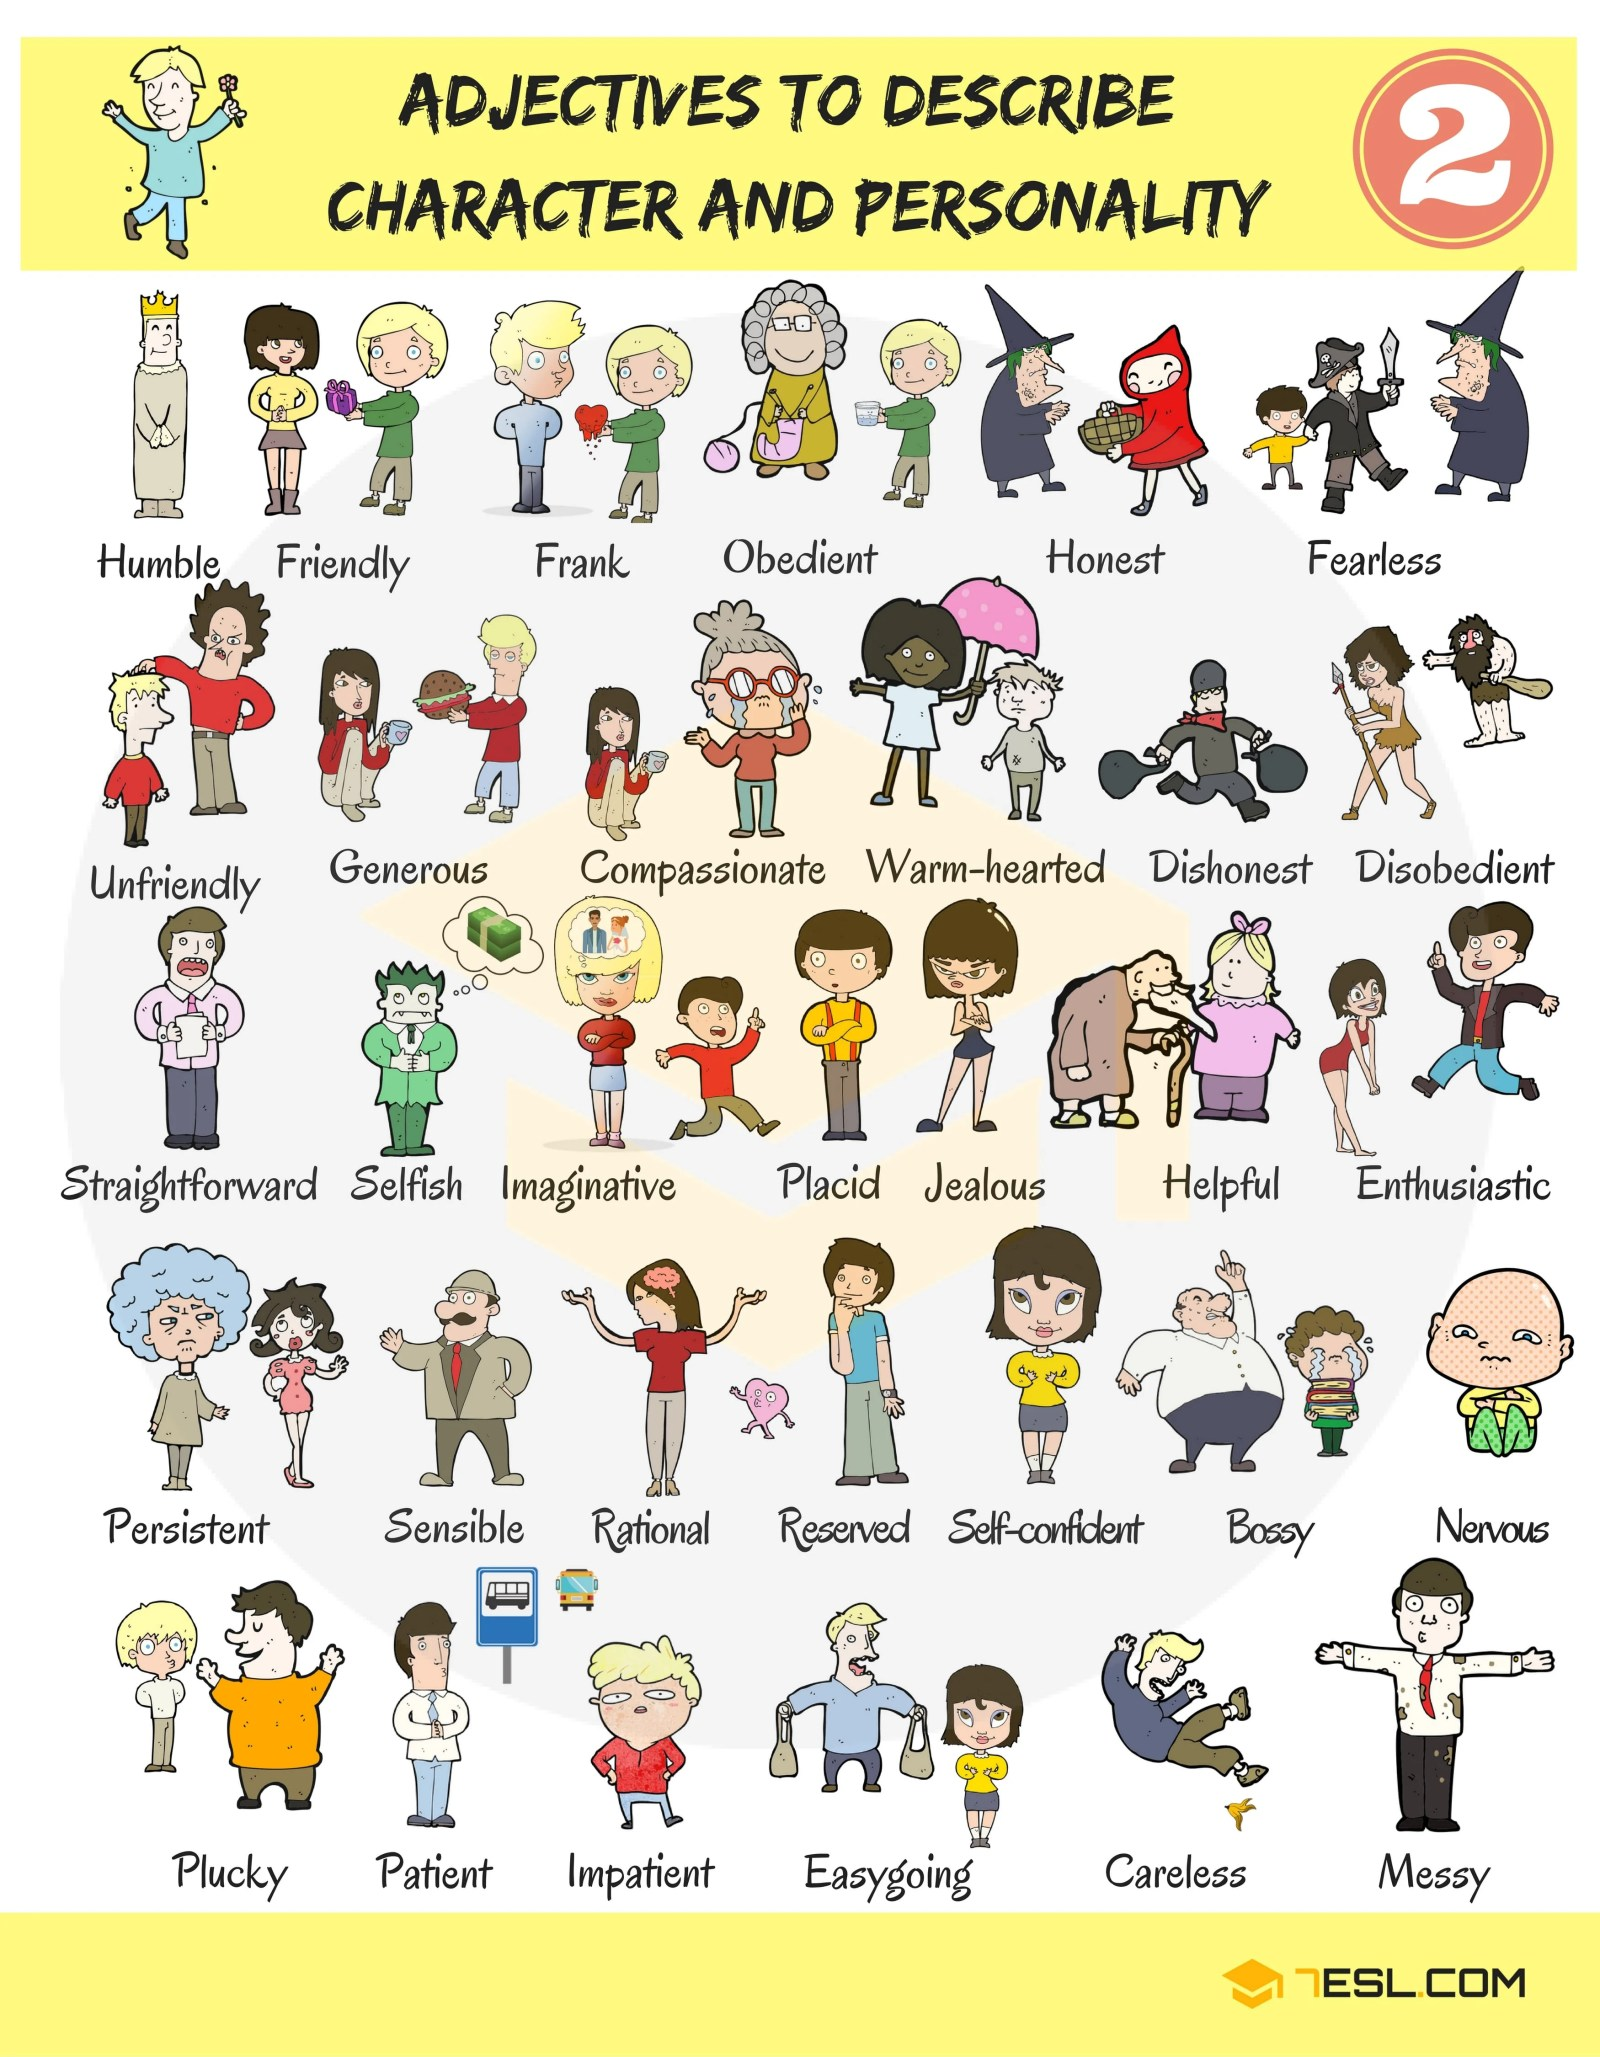 English Adjectives for Describing Character and Personality 14